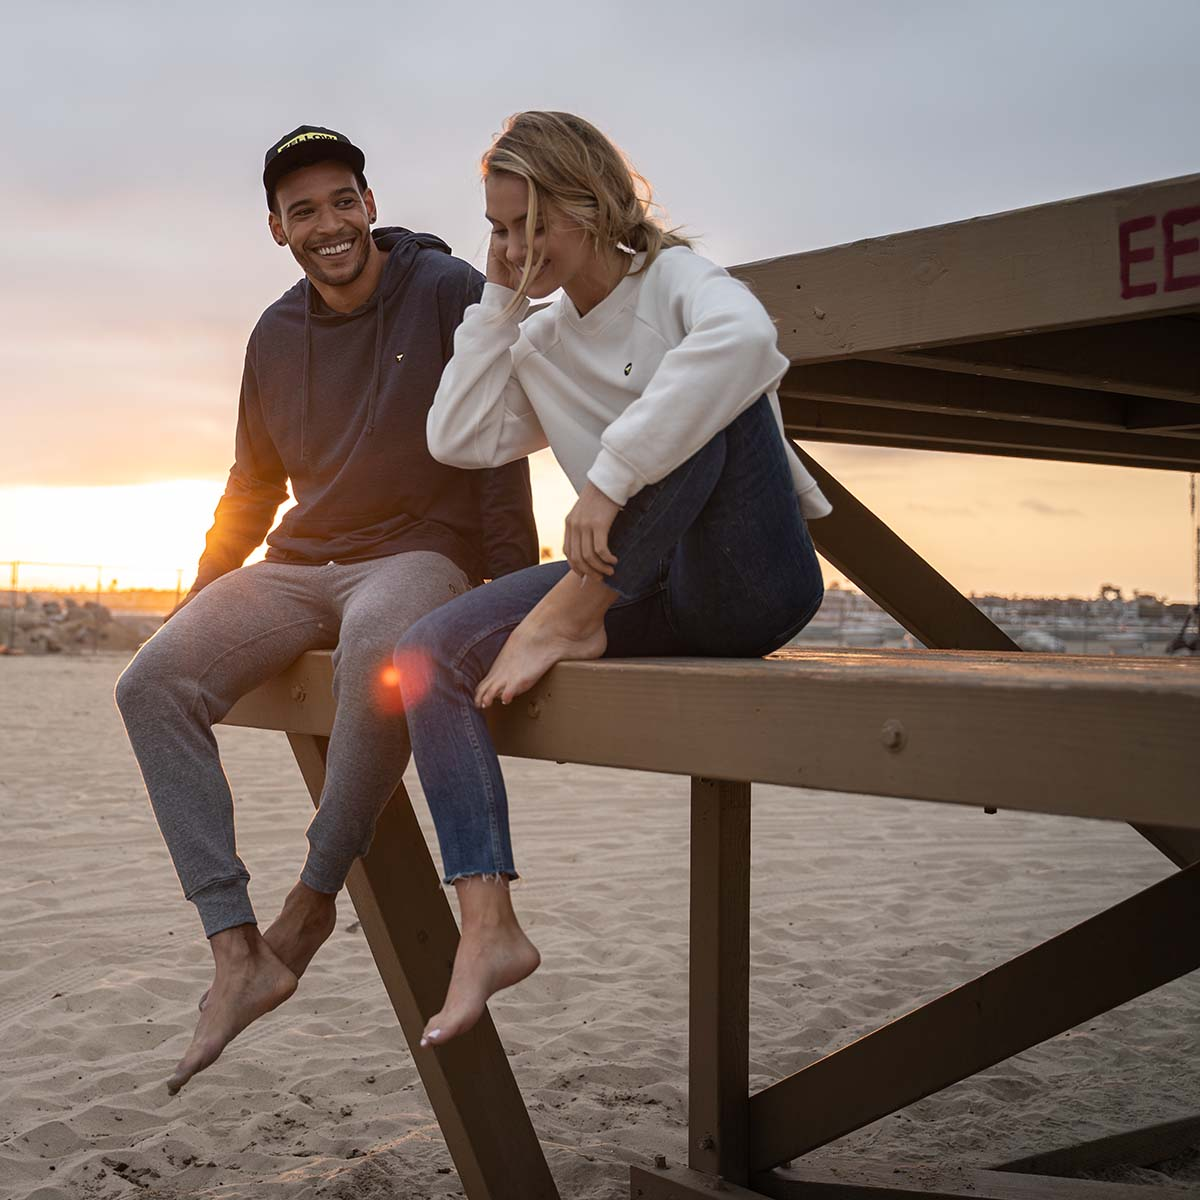 Lifestyle-On-Location-Model-Onmodel-Damion-Lloyd-Photography-Commercial-Product-Apparel-Clothing-Los-Angeles-Orange-County-female-male-man-woman-The-Yellow-Life-beach-sunset-outdoor